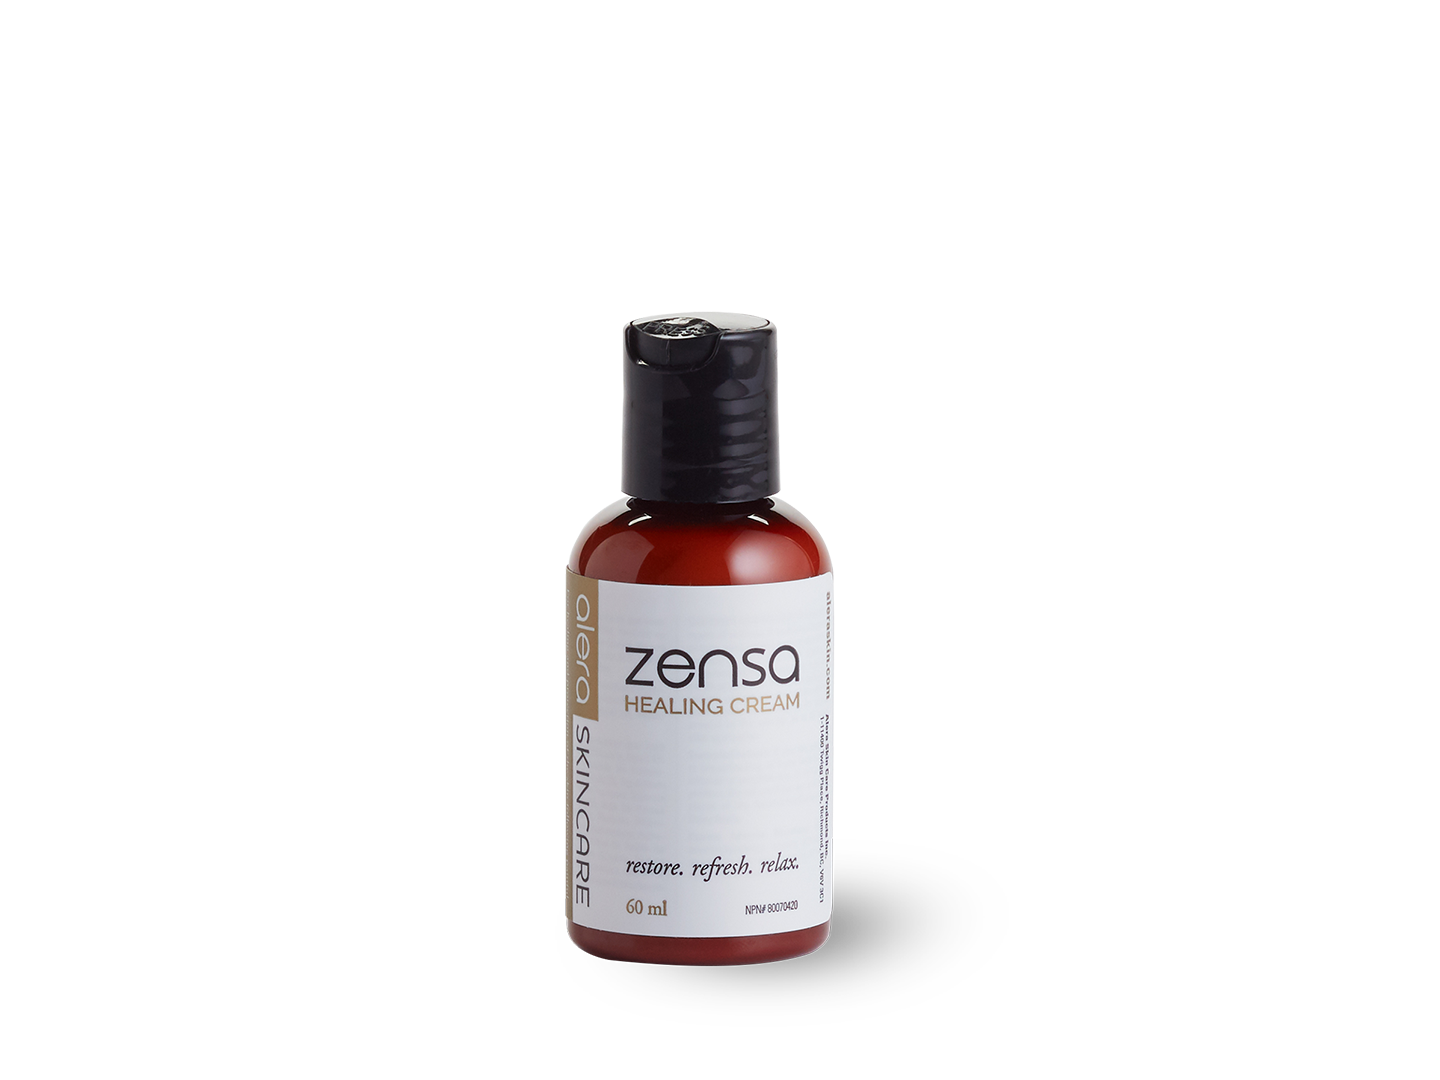 Zensa Healing Cream - 60ml | Pharmaceutical-grade relief for skin